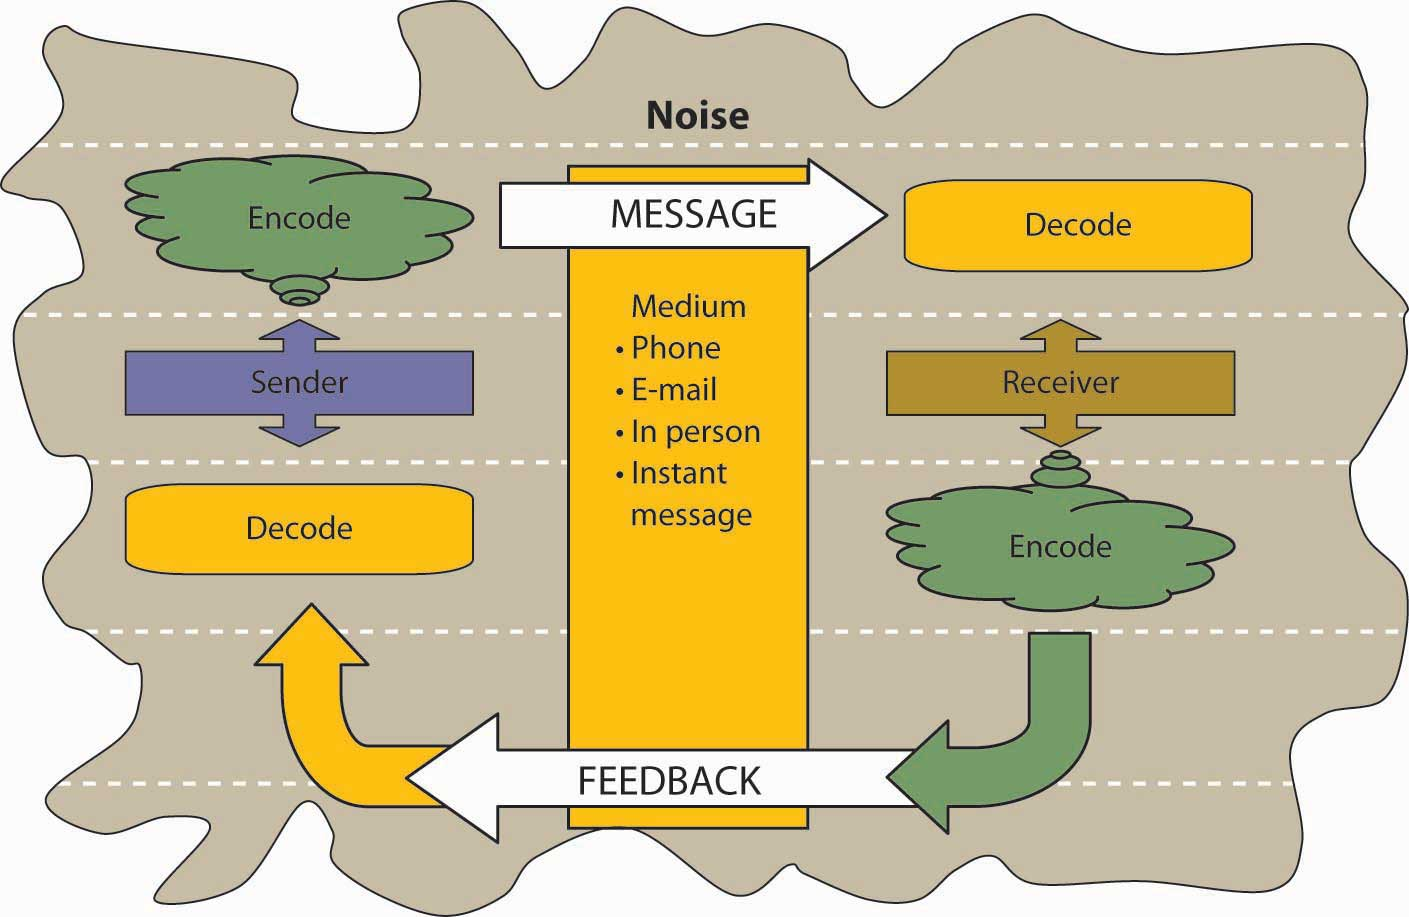 management process and organization behavior The attraction-selection-attrition process self defends the organizational practice impression management and show management - organizational behavior ch.